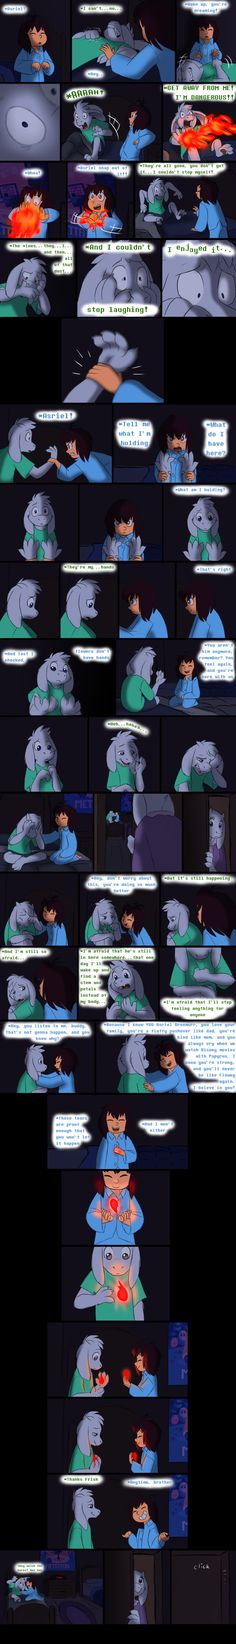 endertale___page_16_by_tc_96-daqlhuz.png (1123×7825)